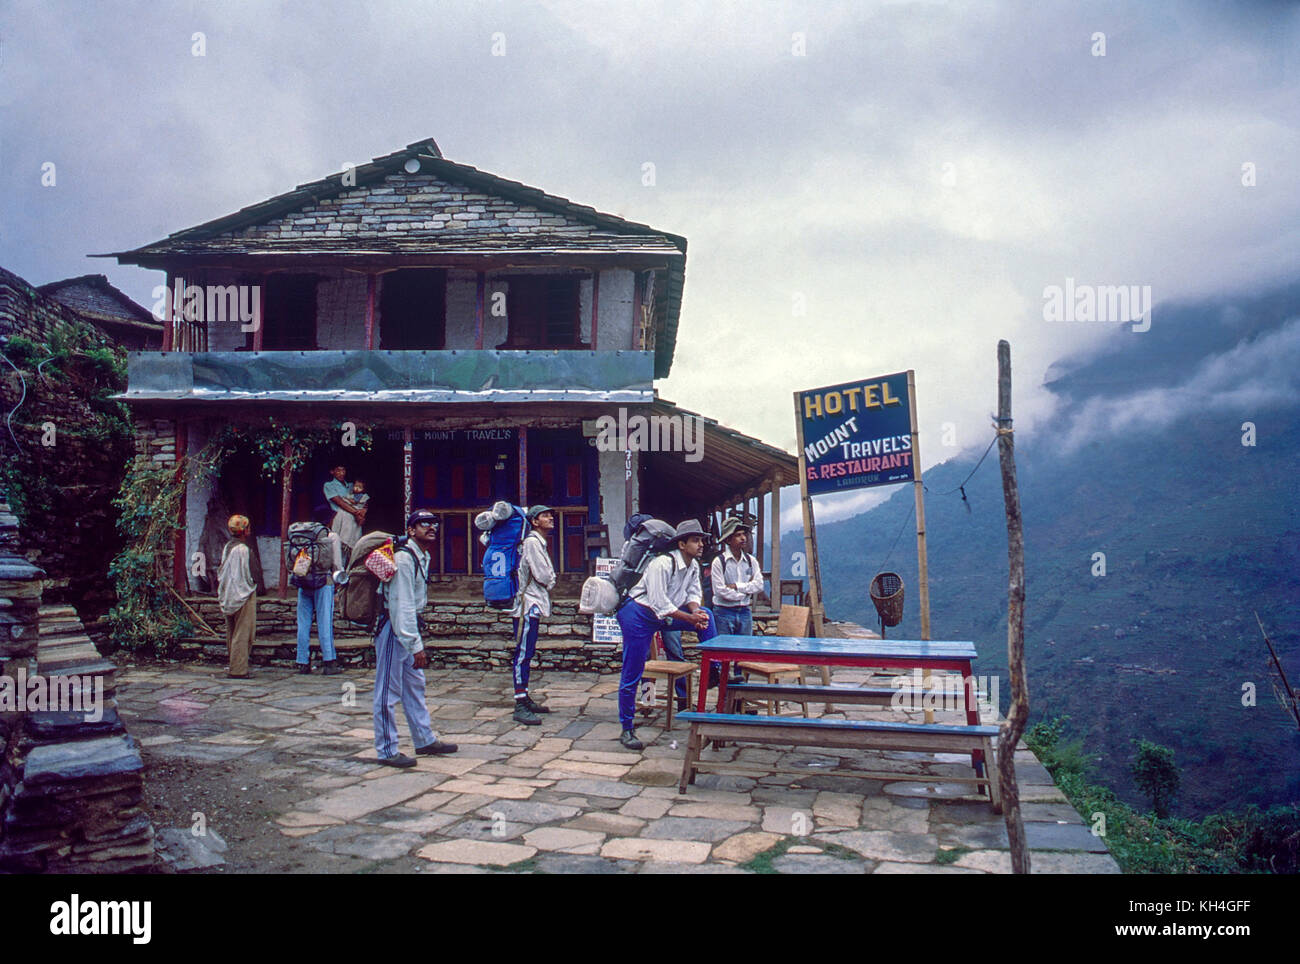 hotel mount travels, landrum village on route of Annapurna base camp, Nepal, Asia - Stock Image